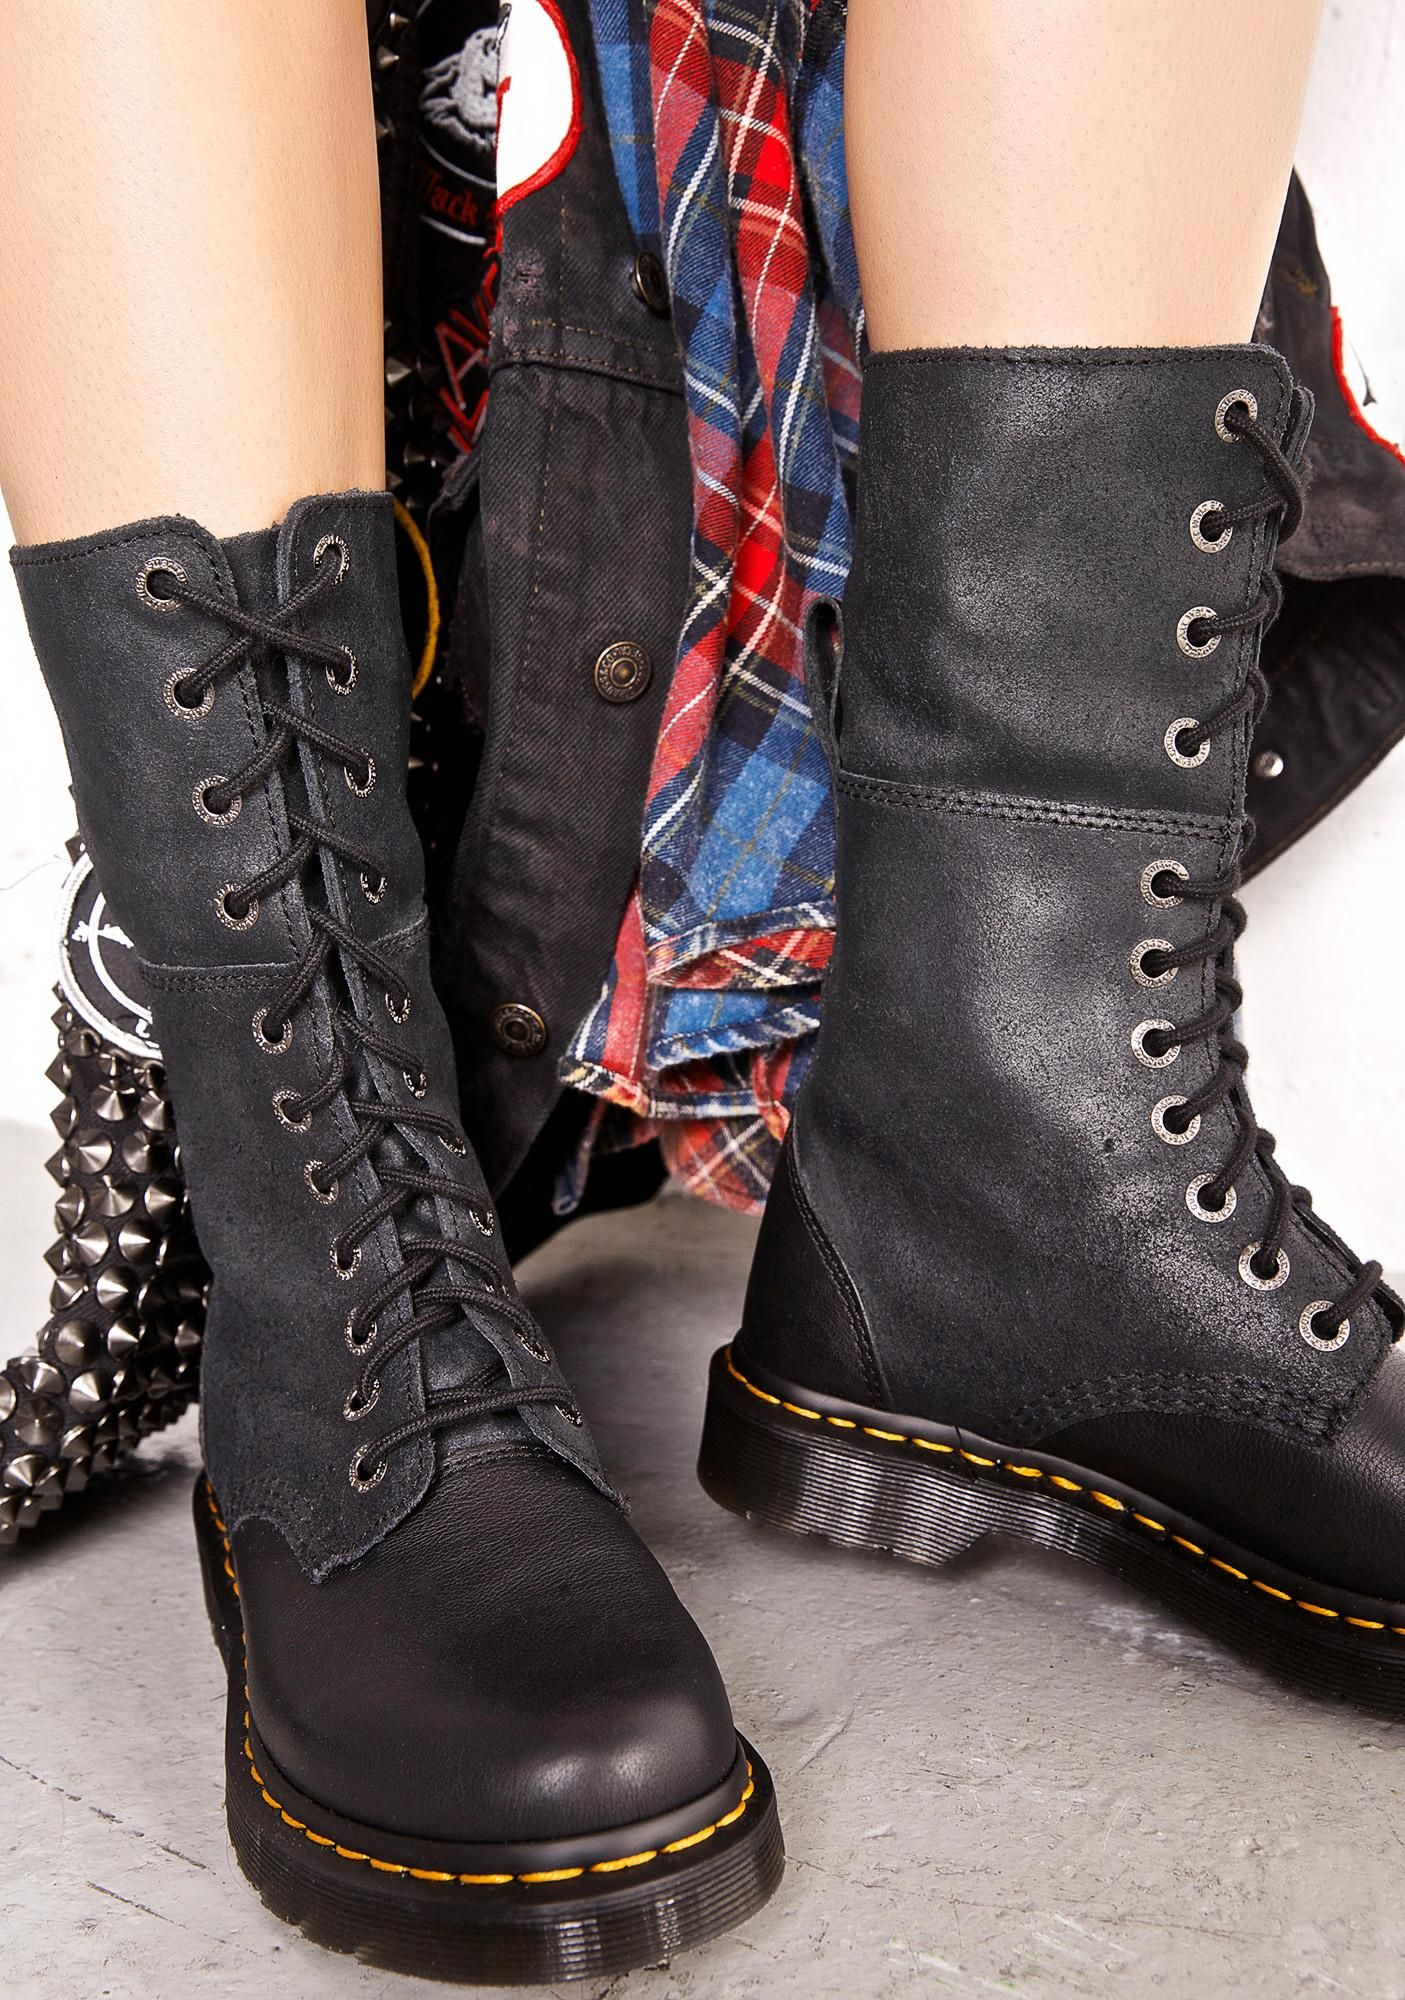 Dr. Martens Hazil Tall Slouch Boots cuz yer a wanderin' soul, and need